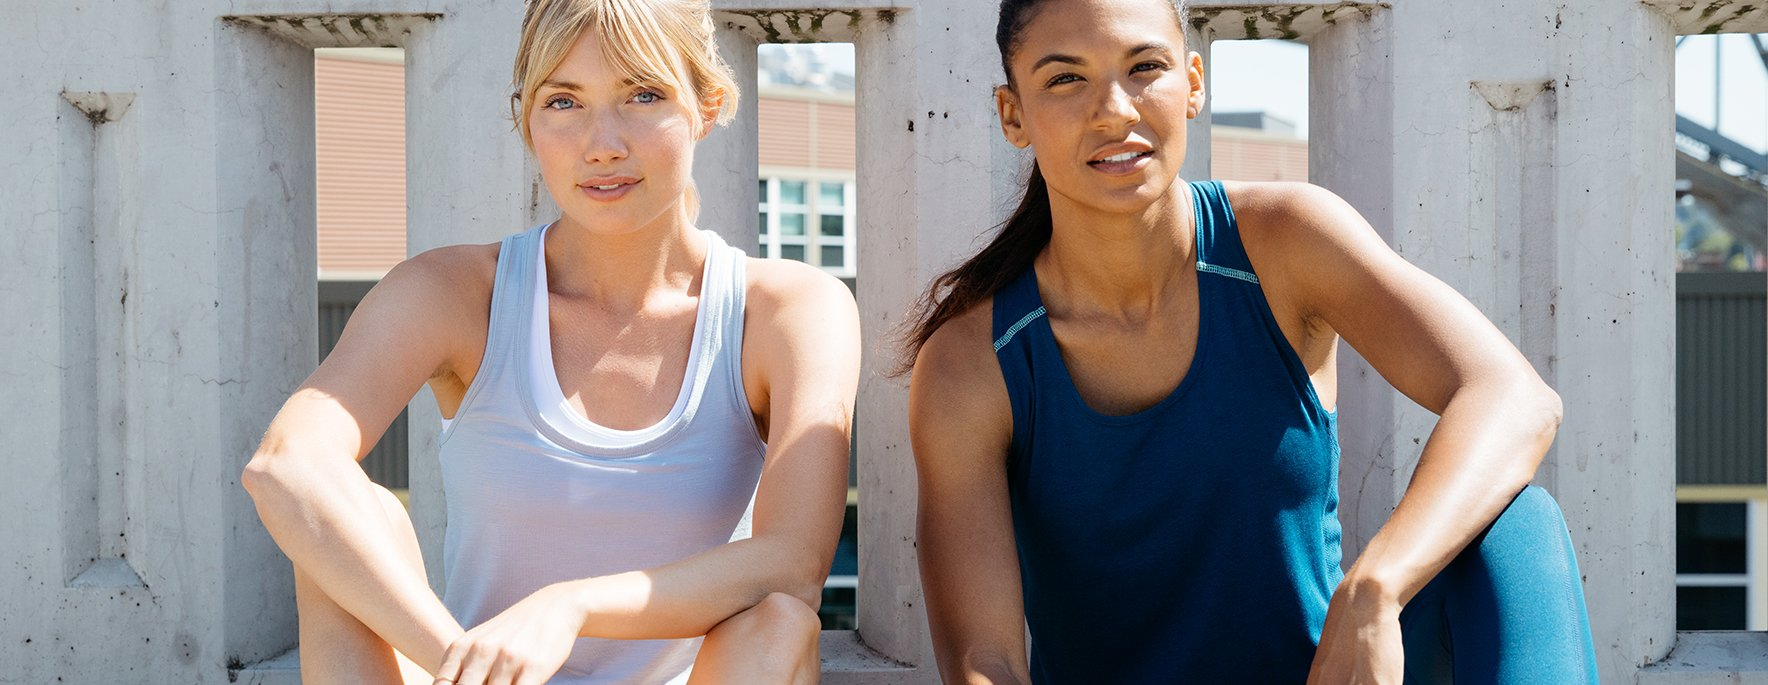 Women's active tops - bamboo performance tops - tasc Performance